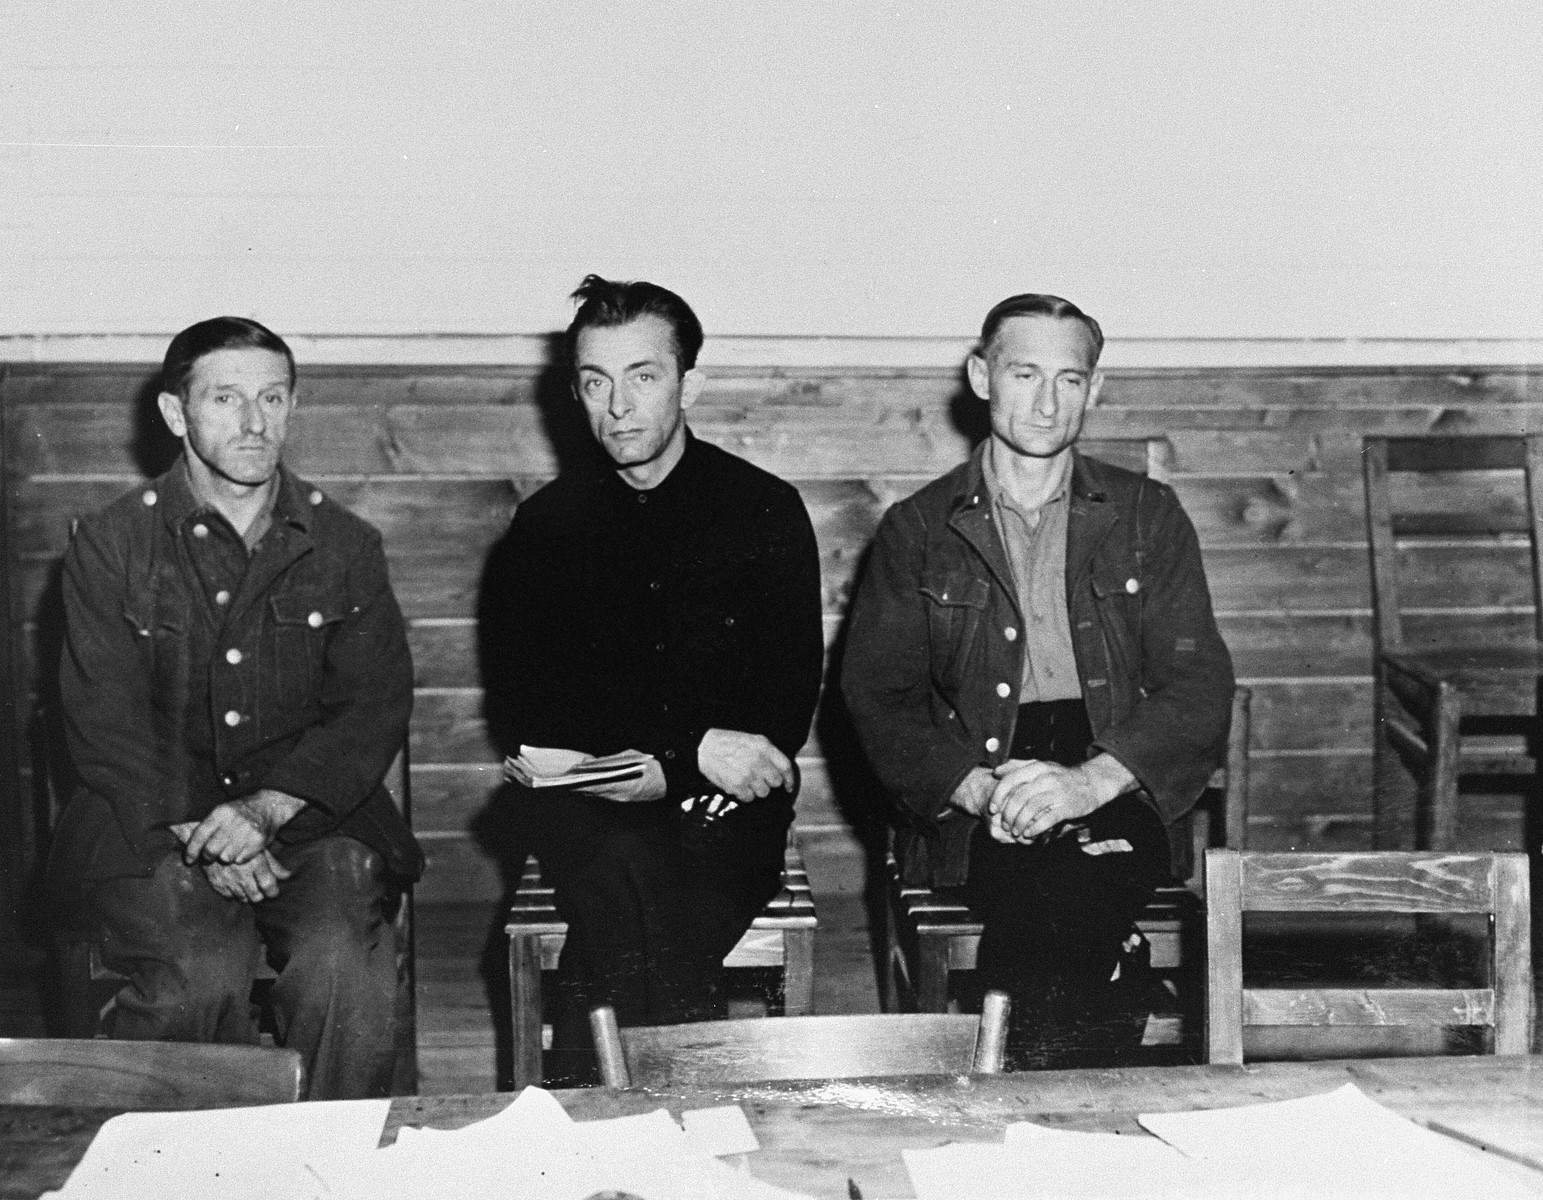 Three prisoners who await trial for murder and mistreatment of prisoners at Gusen, a sub-camp of Mauthausen, sit in on proceedings at the trial of former camp personnel and prisoners from Dora-Mittelbau.